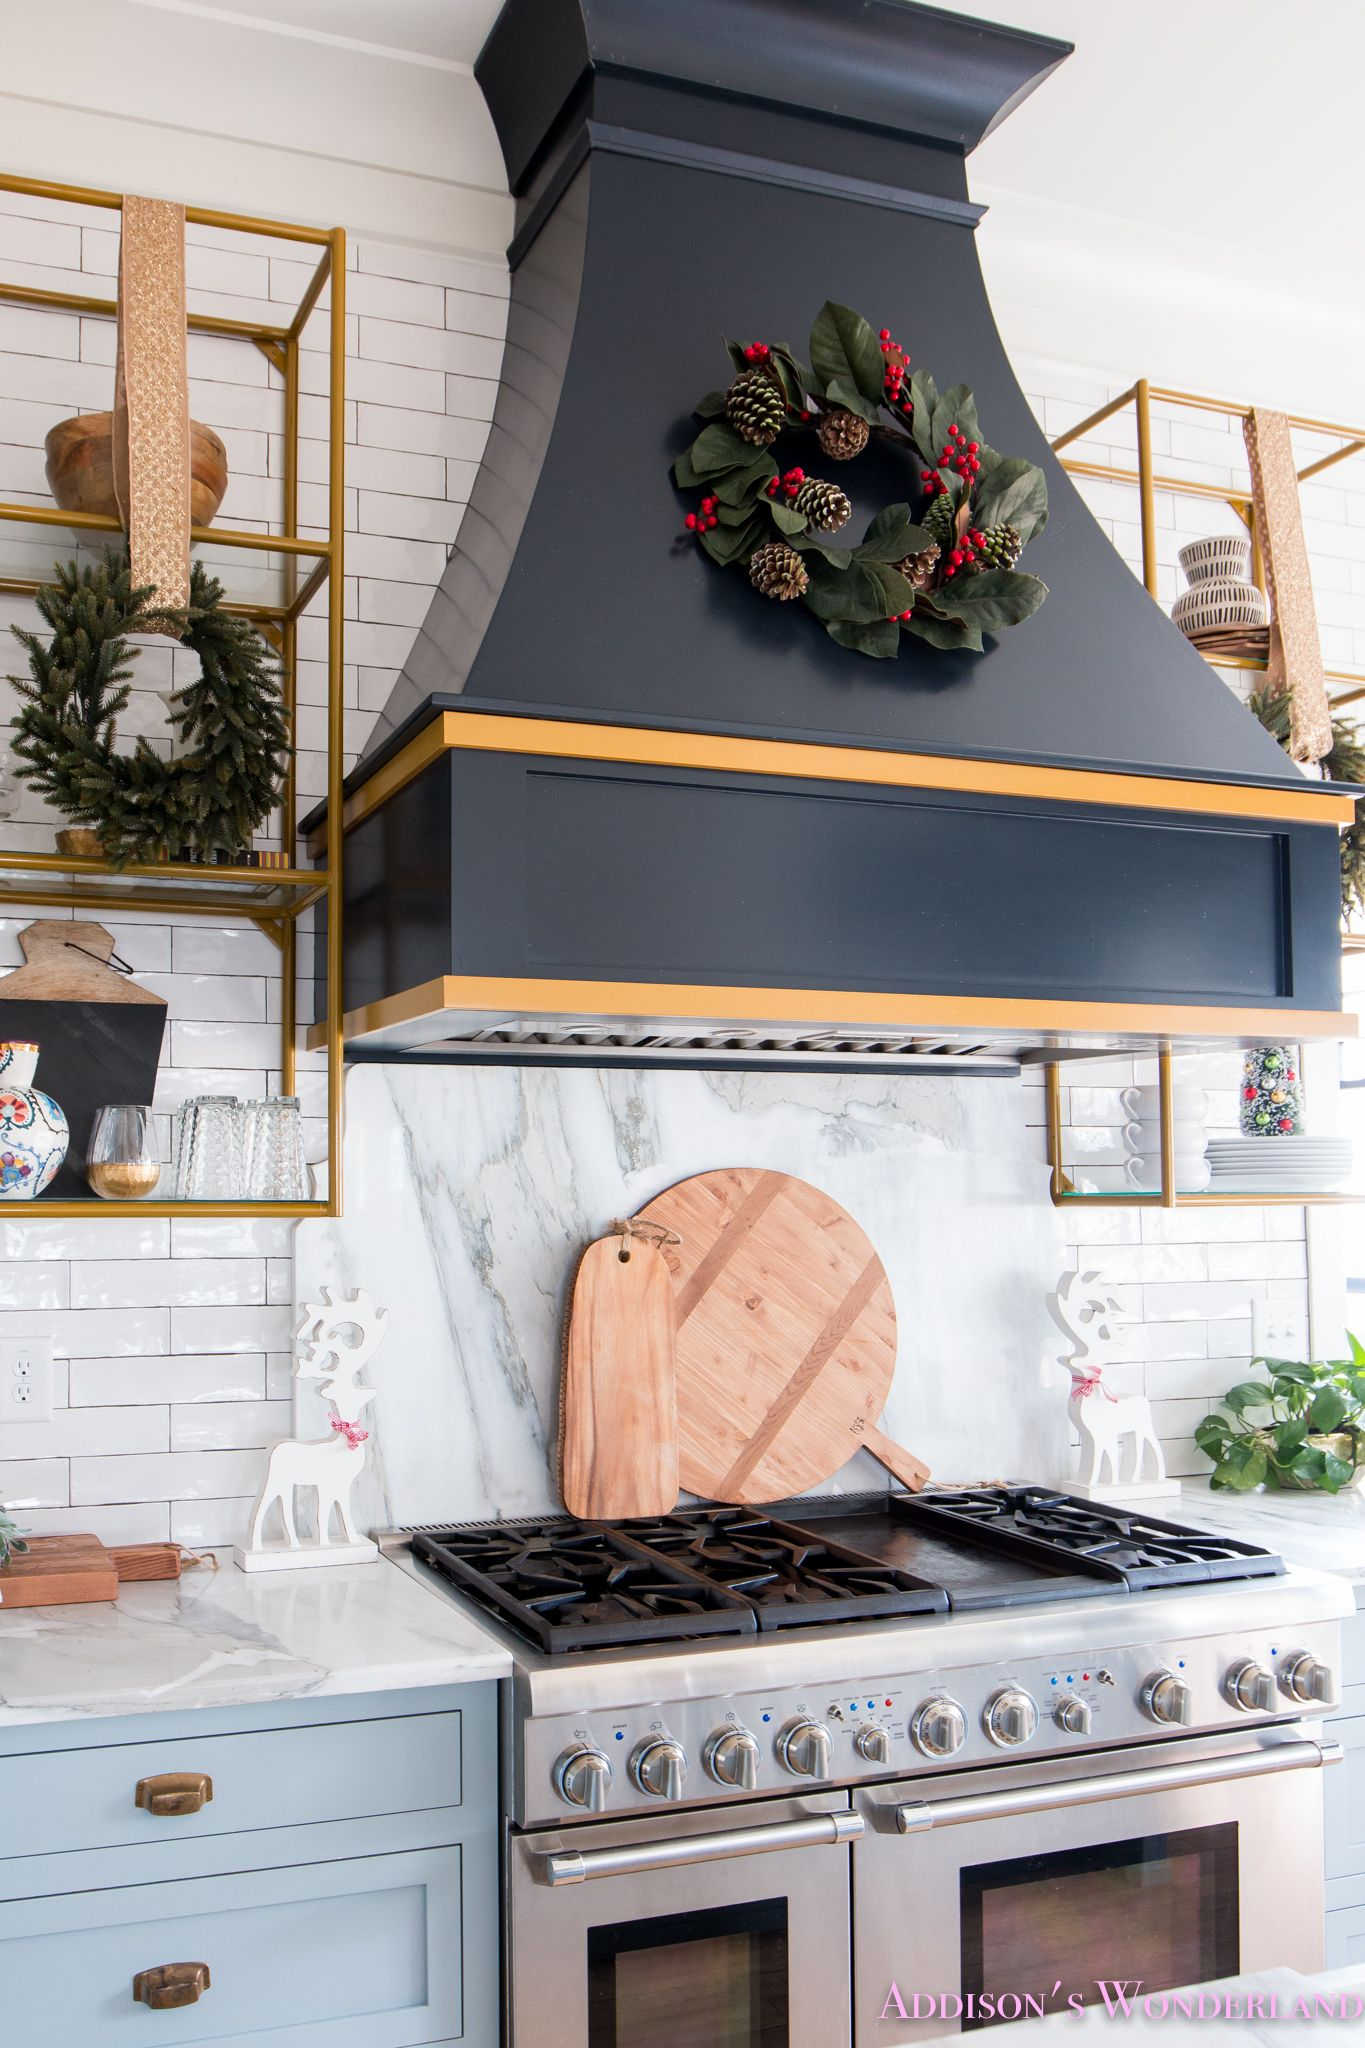 Inside Our Vintage Modern Style Holiday Kitchen with HomeGoods... Sponsored by HomeGoods. kitchen-powder-blue-gray-cabinet-color-white-marble-countertops- ... : holiday kitchen cabinet - hauntedcathouse.org